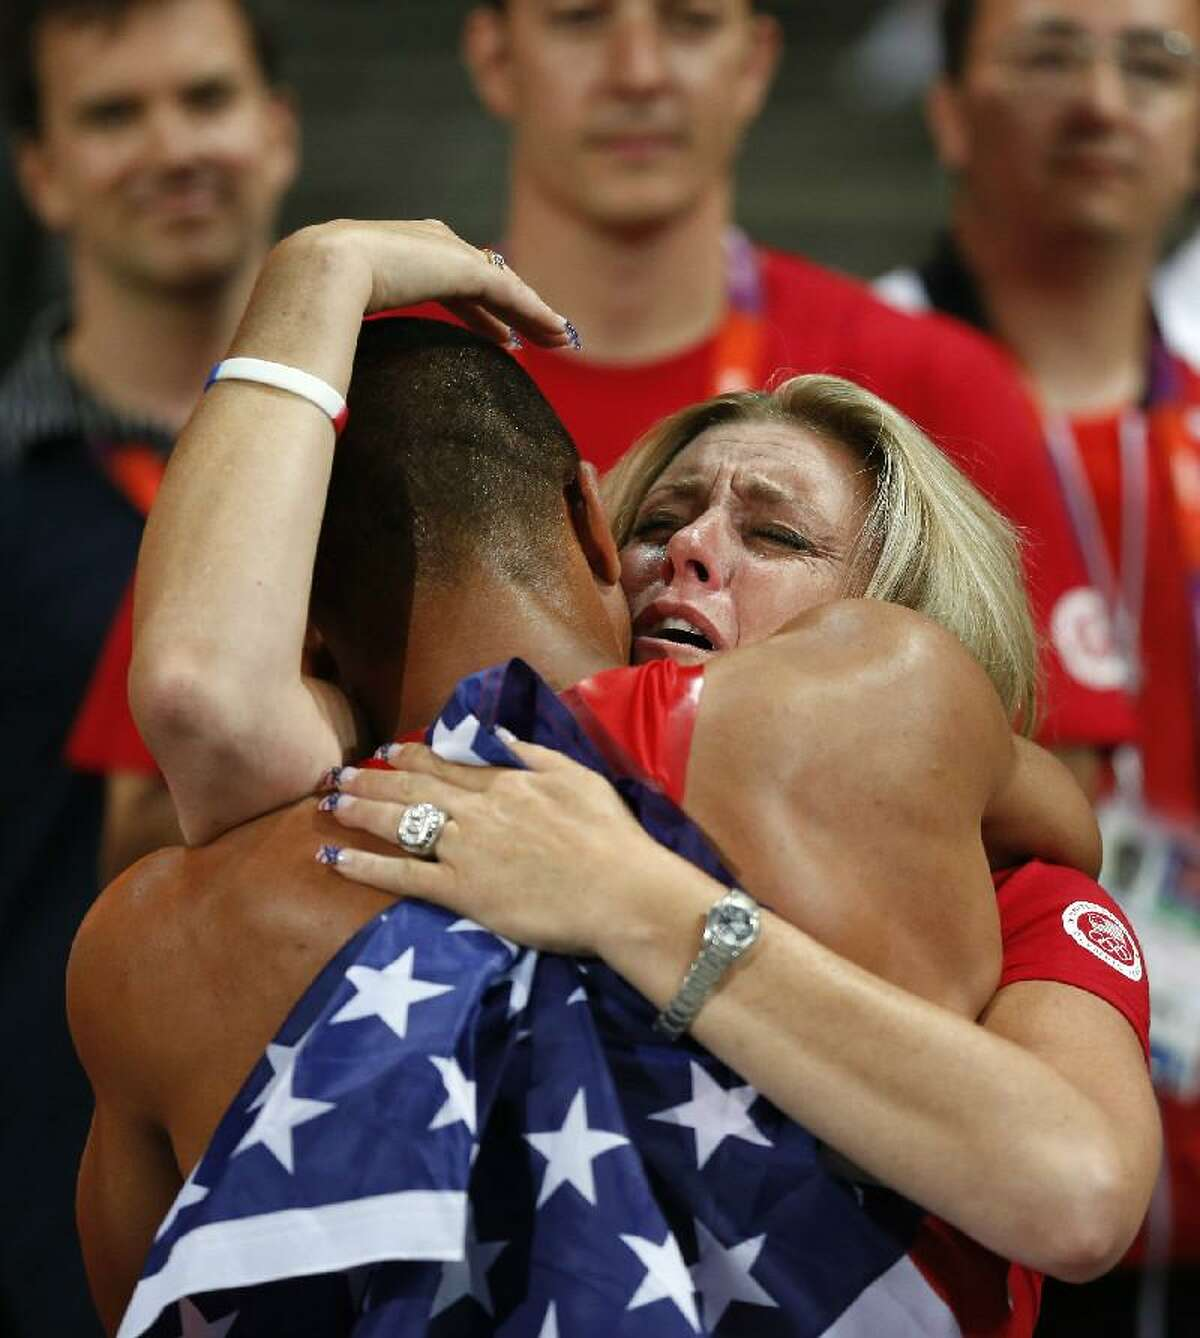 ASSOCIATED PRESS United States' Ashton Eaton is embraced by his mother Roslyn Eaton after winning gold in the decathlon during the athletics in the Olympic Stadium at the 2012 Summer Olympics Thursday in London.